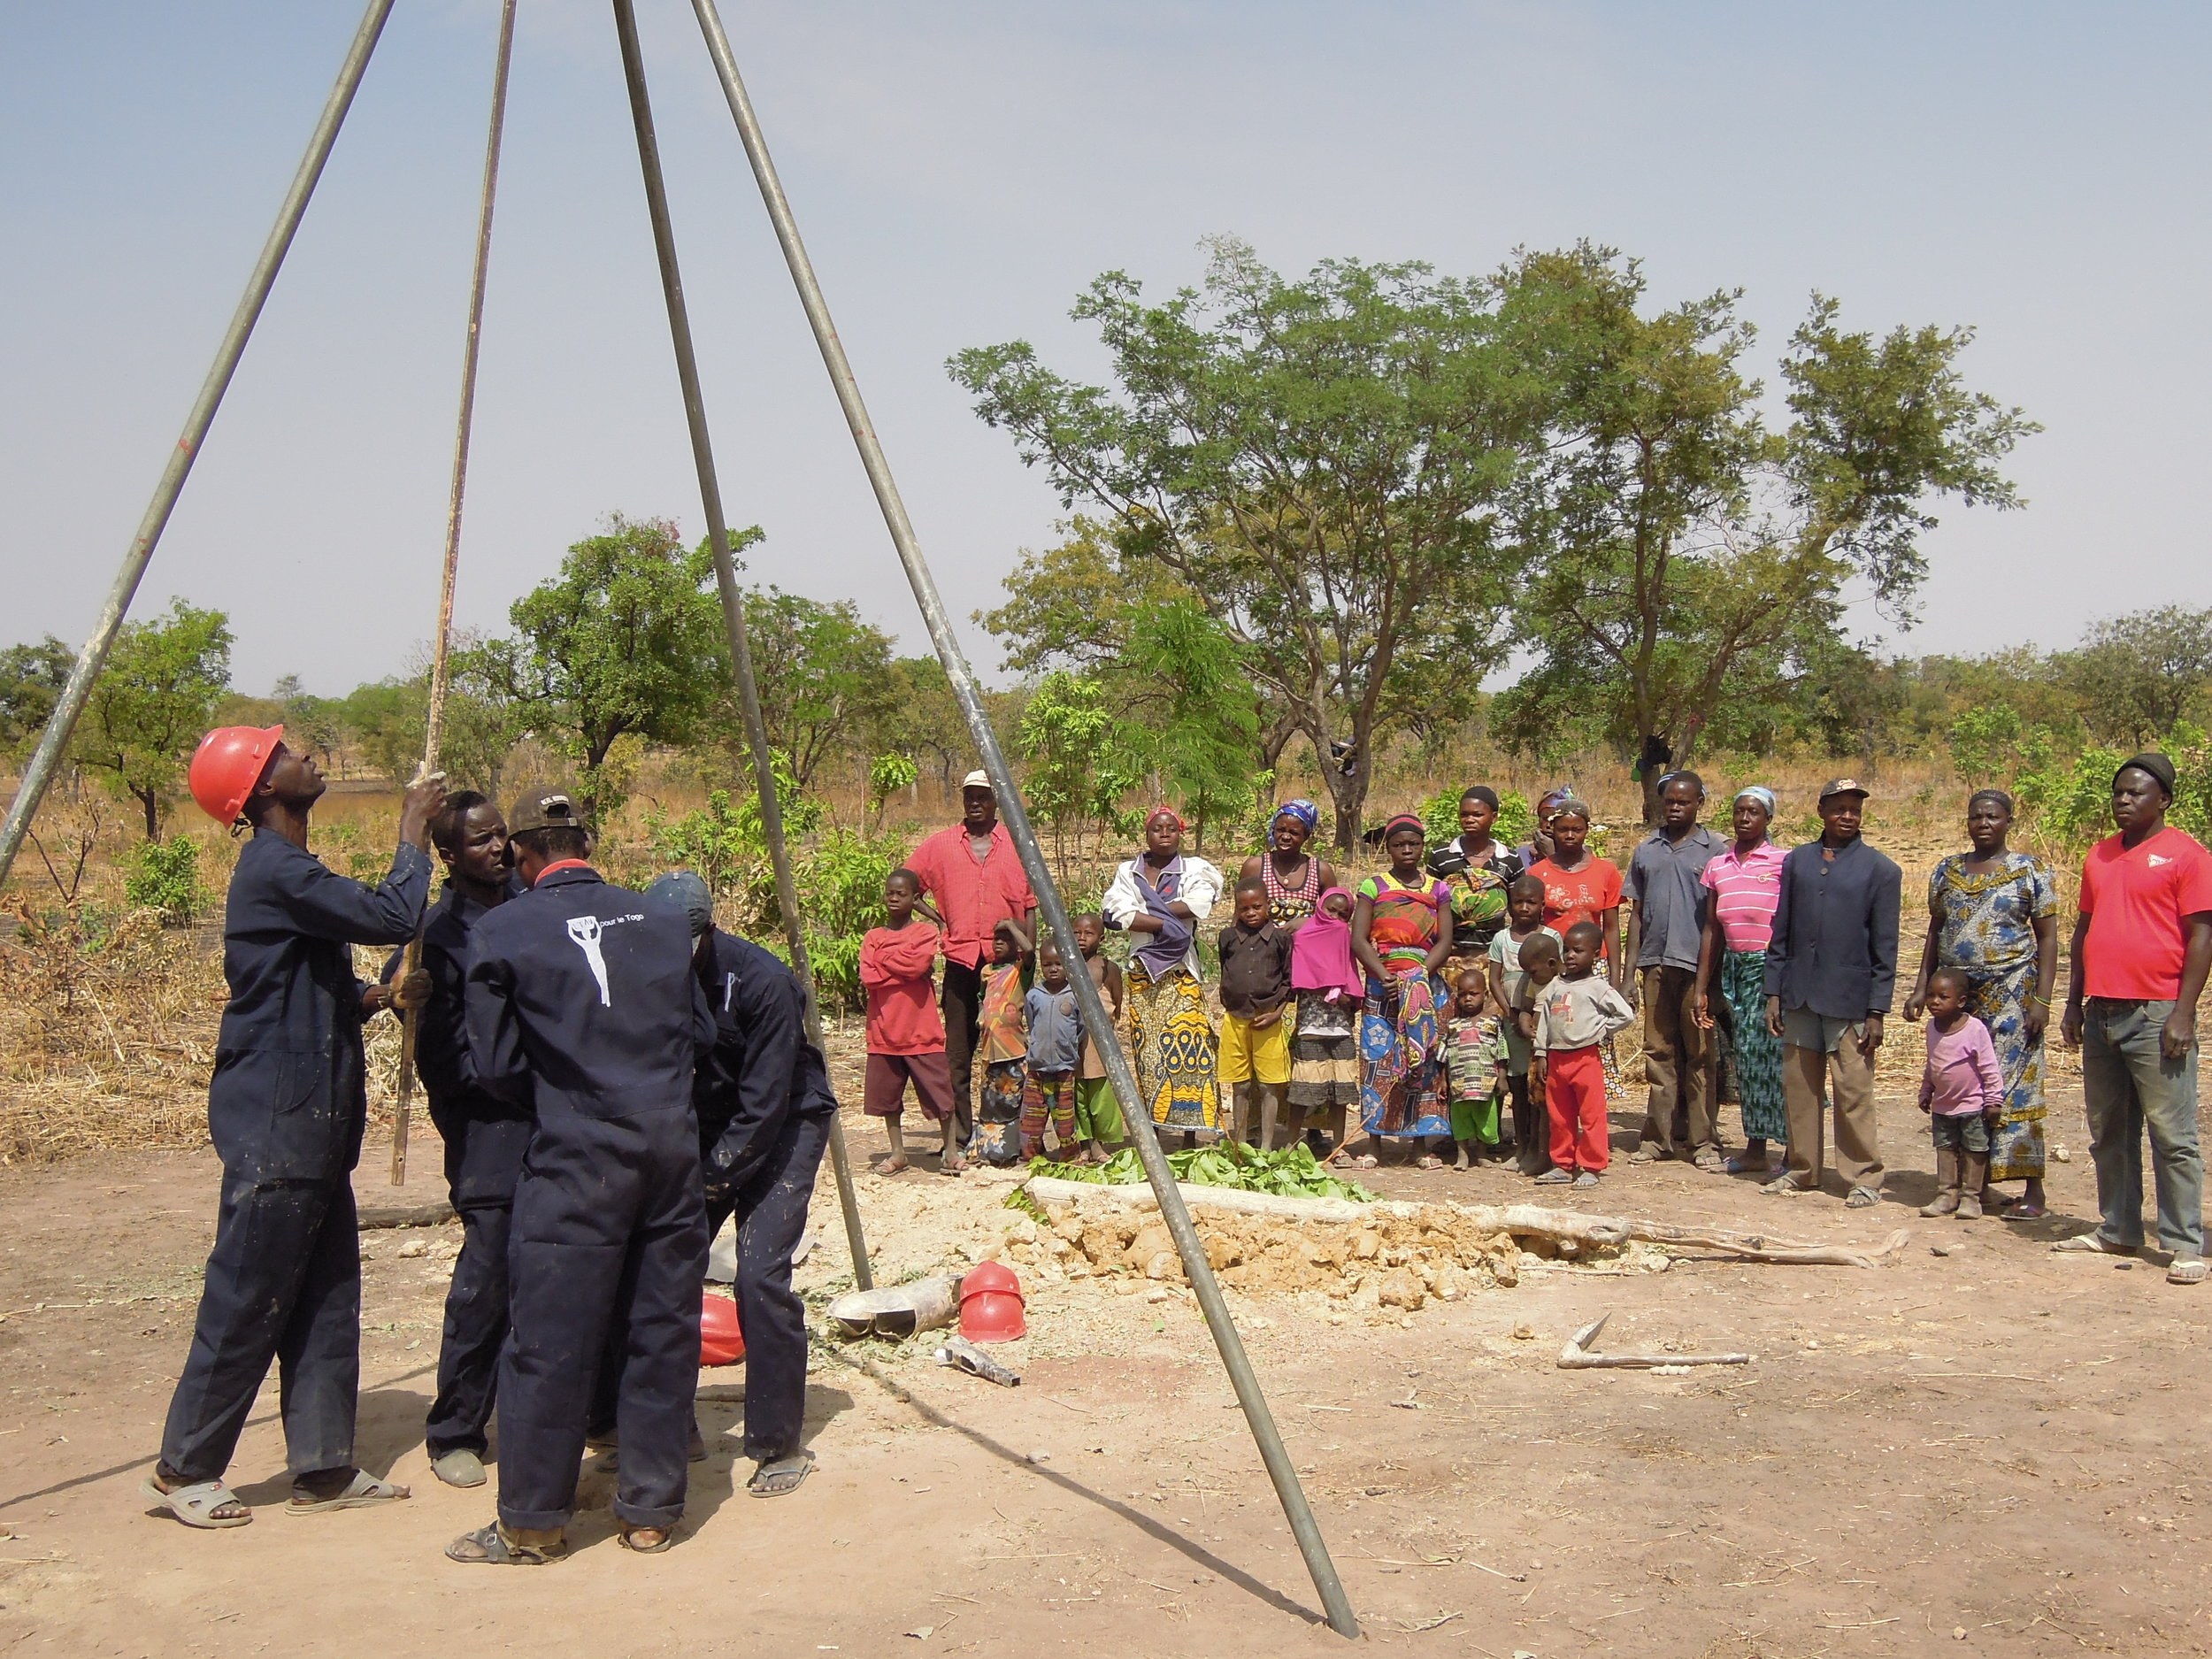 Another drilling team near Kara, Togo. Residence of the village watch in eager anticipation of having clean water for the first time ever.